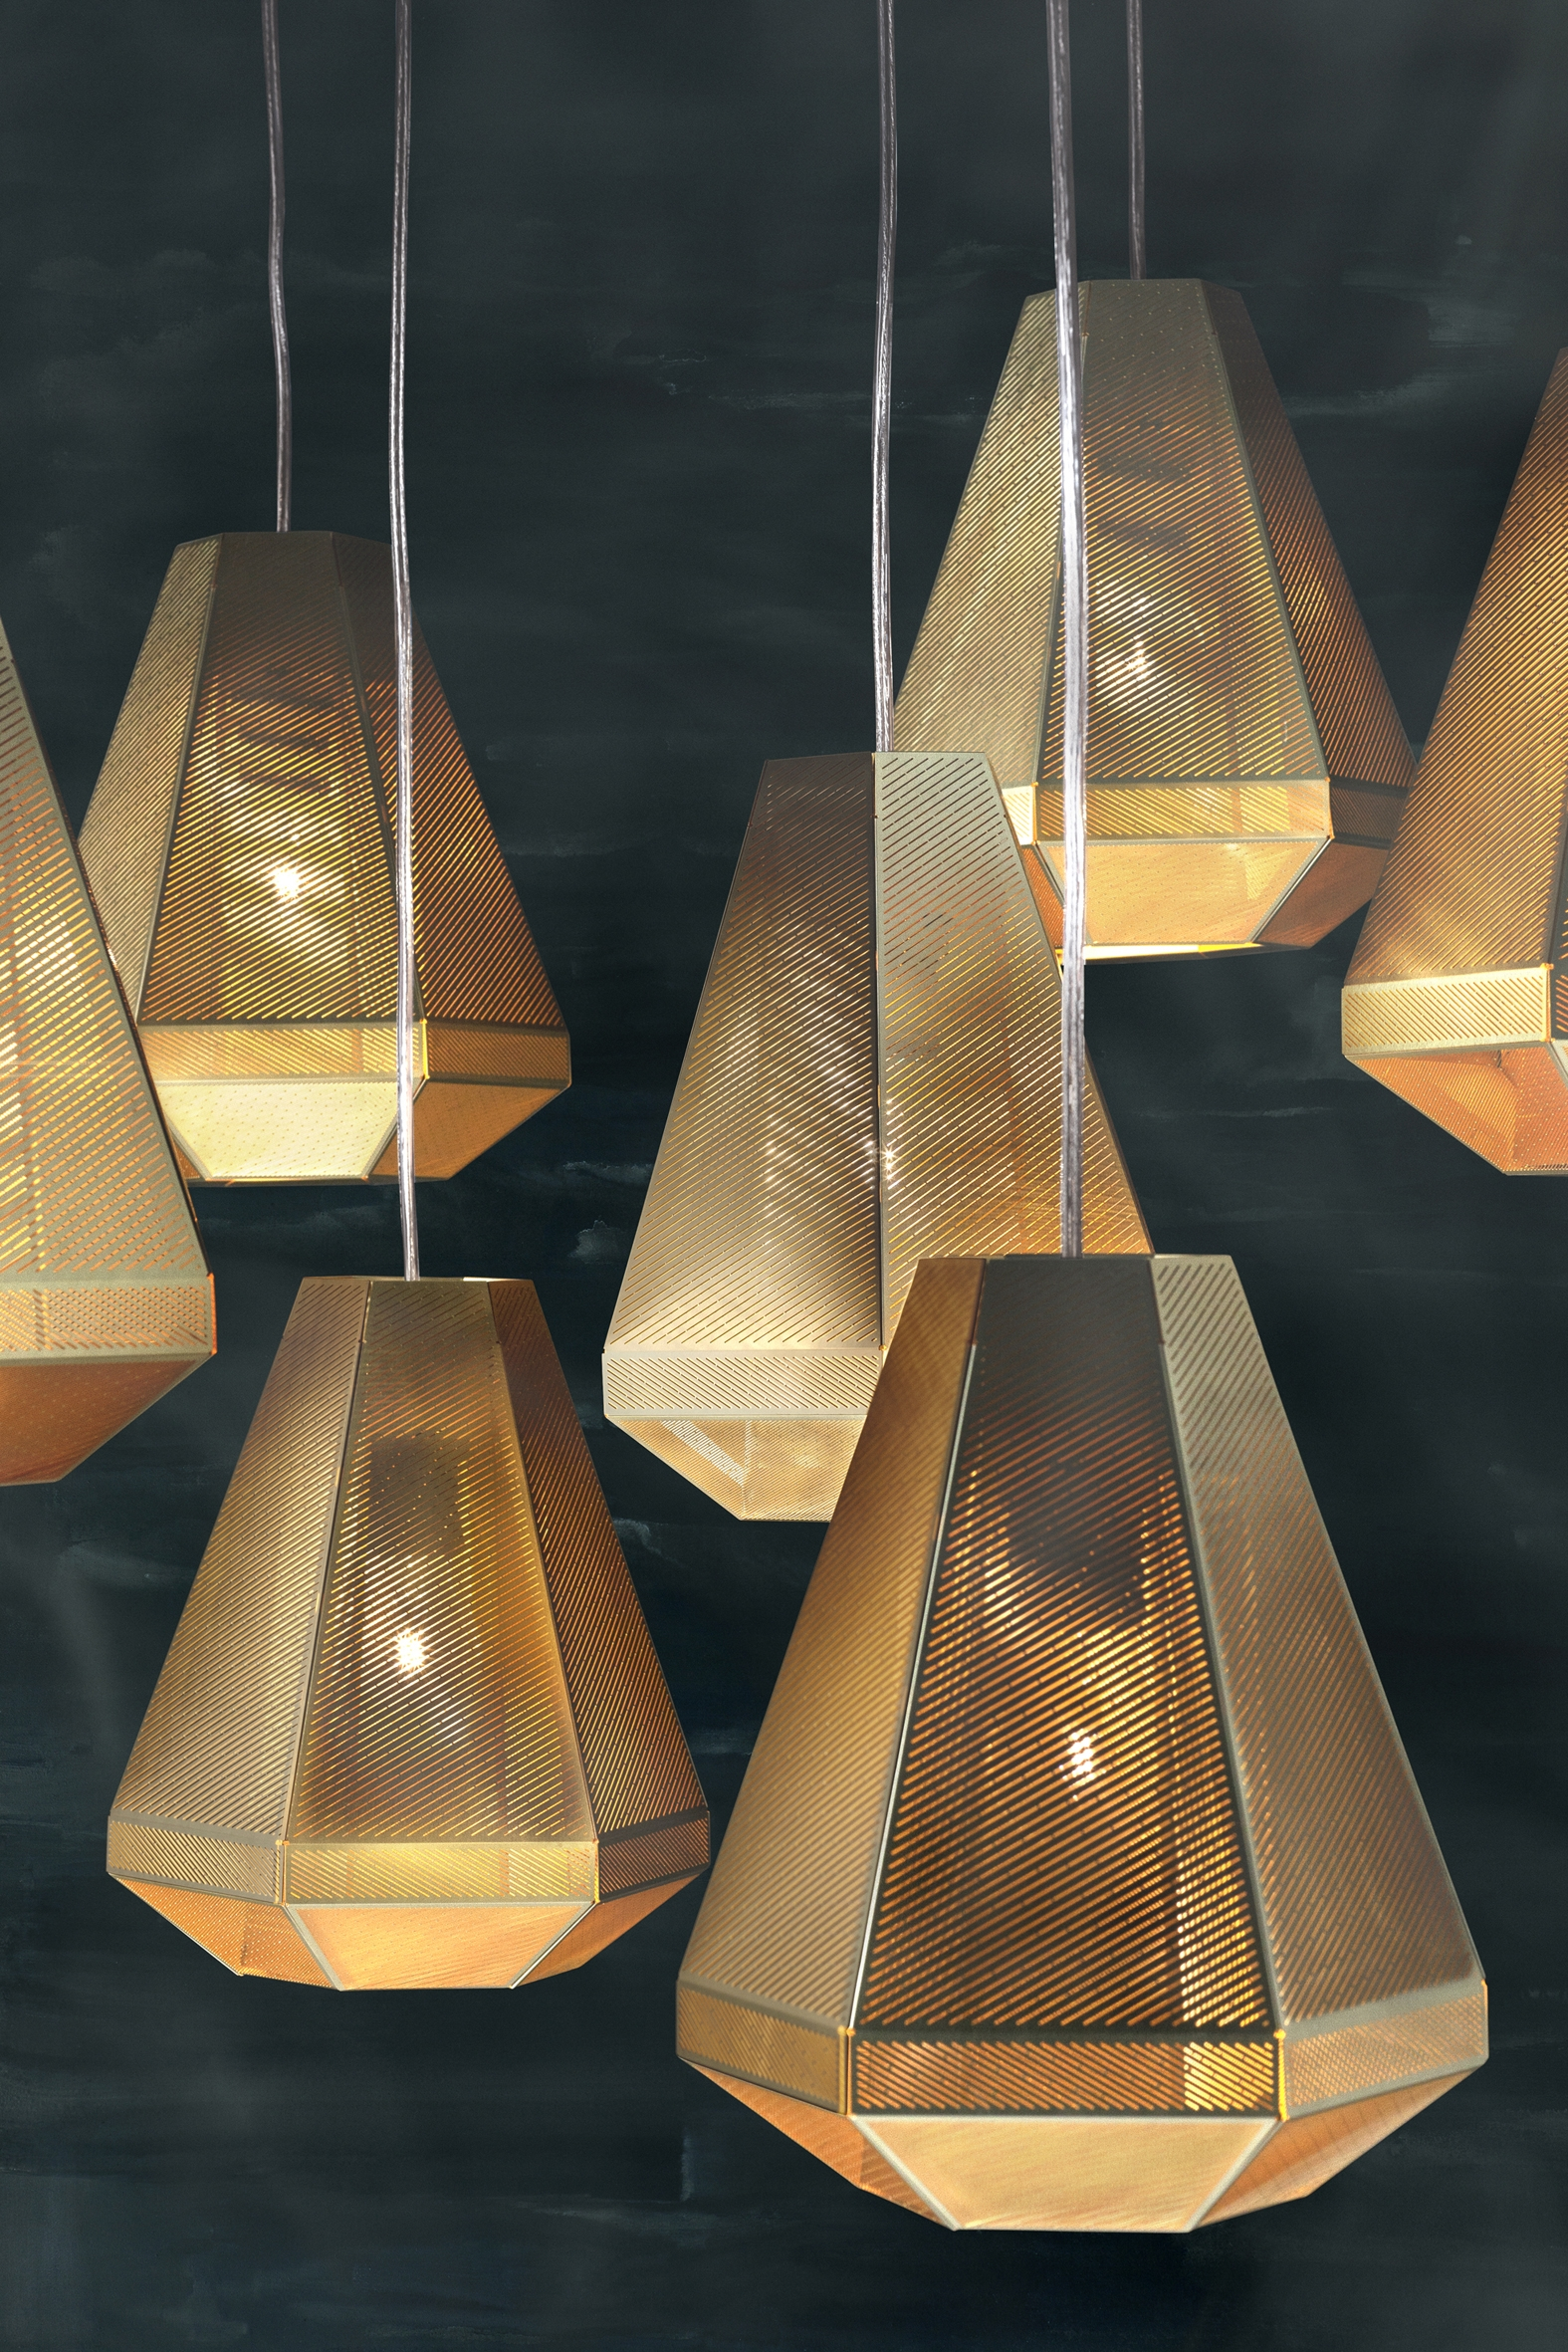 Rough And Smooth By Tom Dixon At Milan Furniture Fair